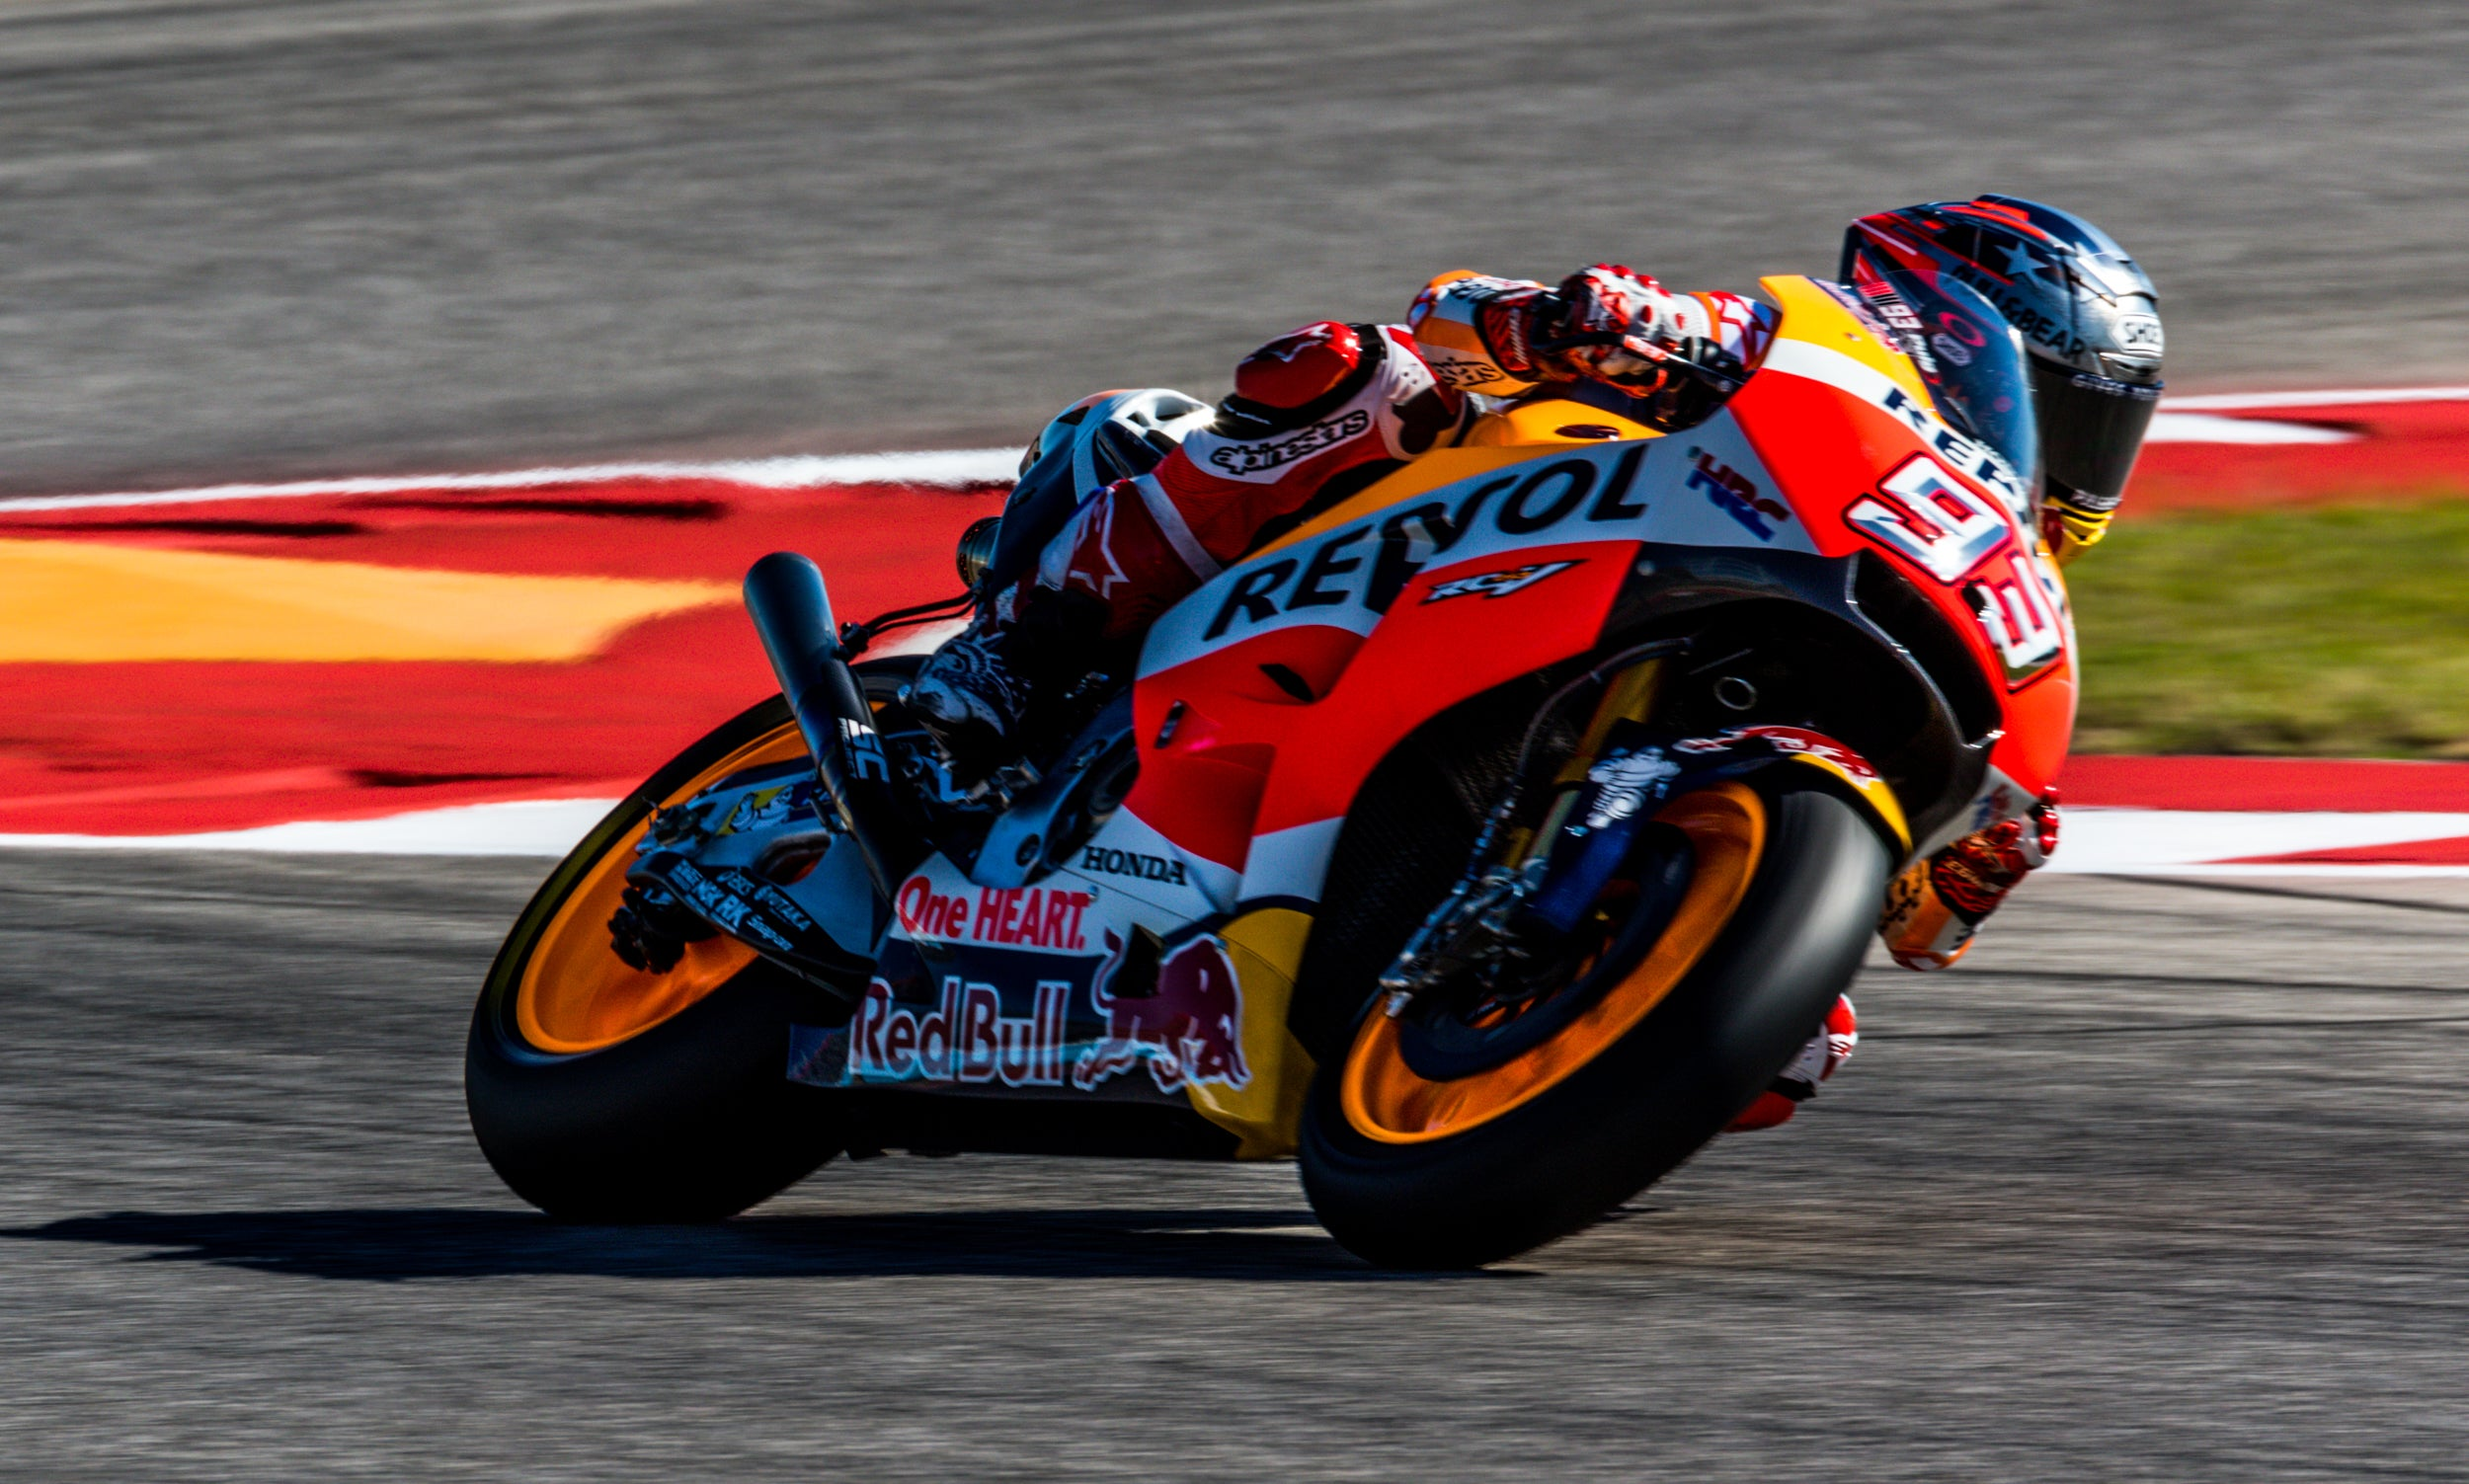 Your Ridiculously Awesome MotoGP Wallpaper Is Here